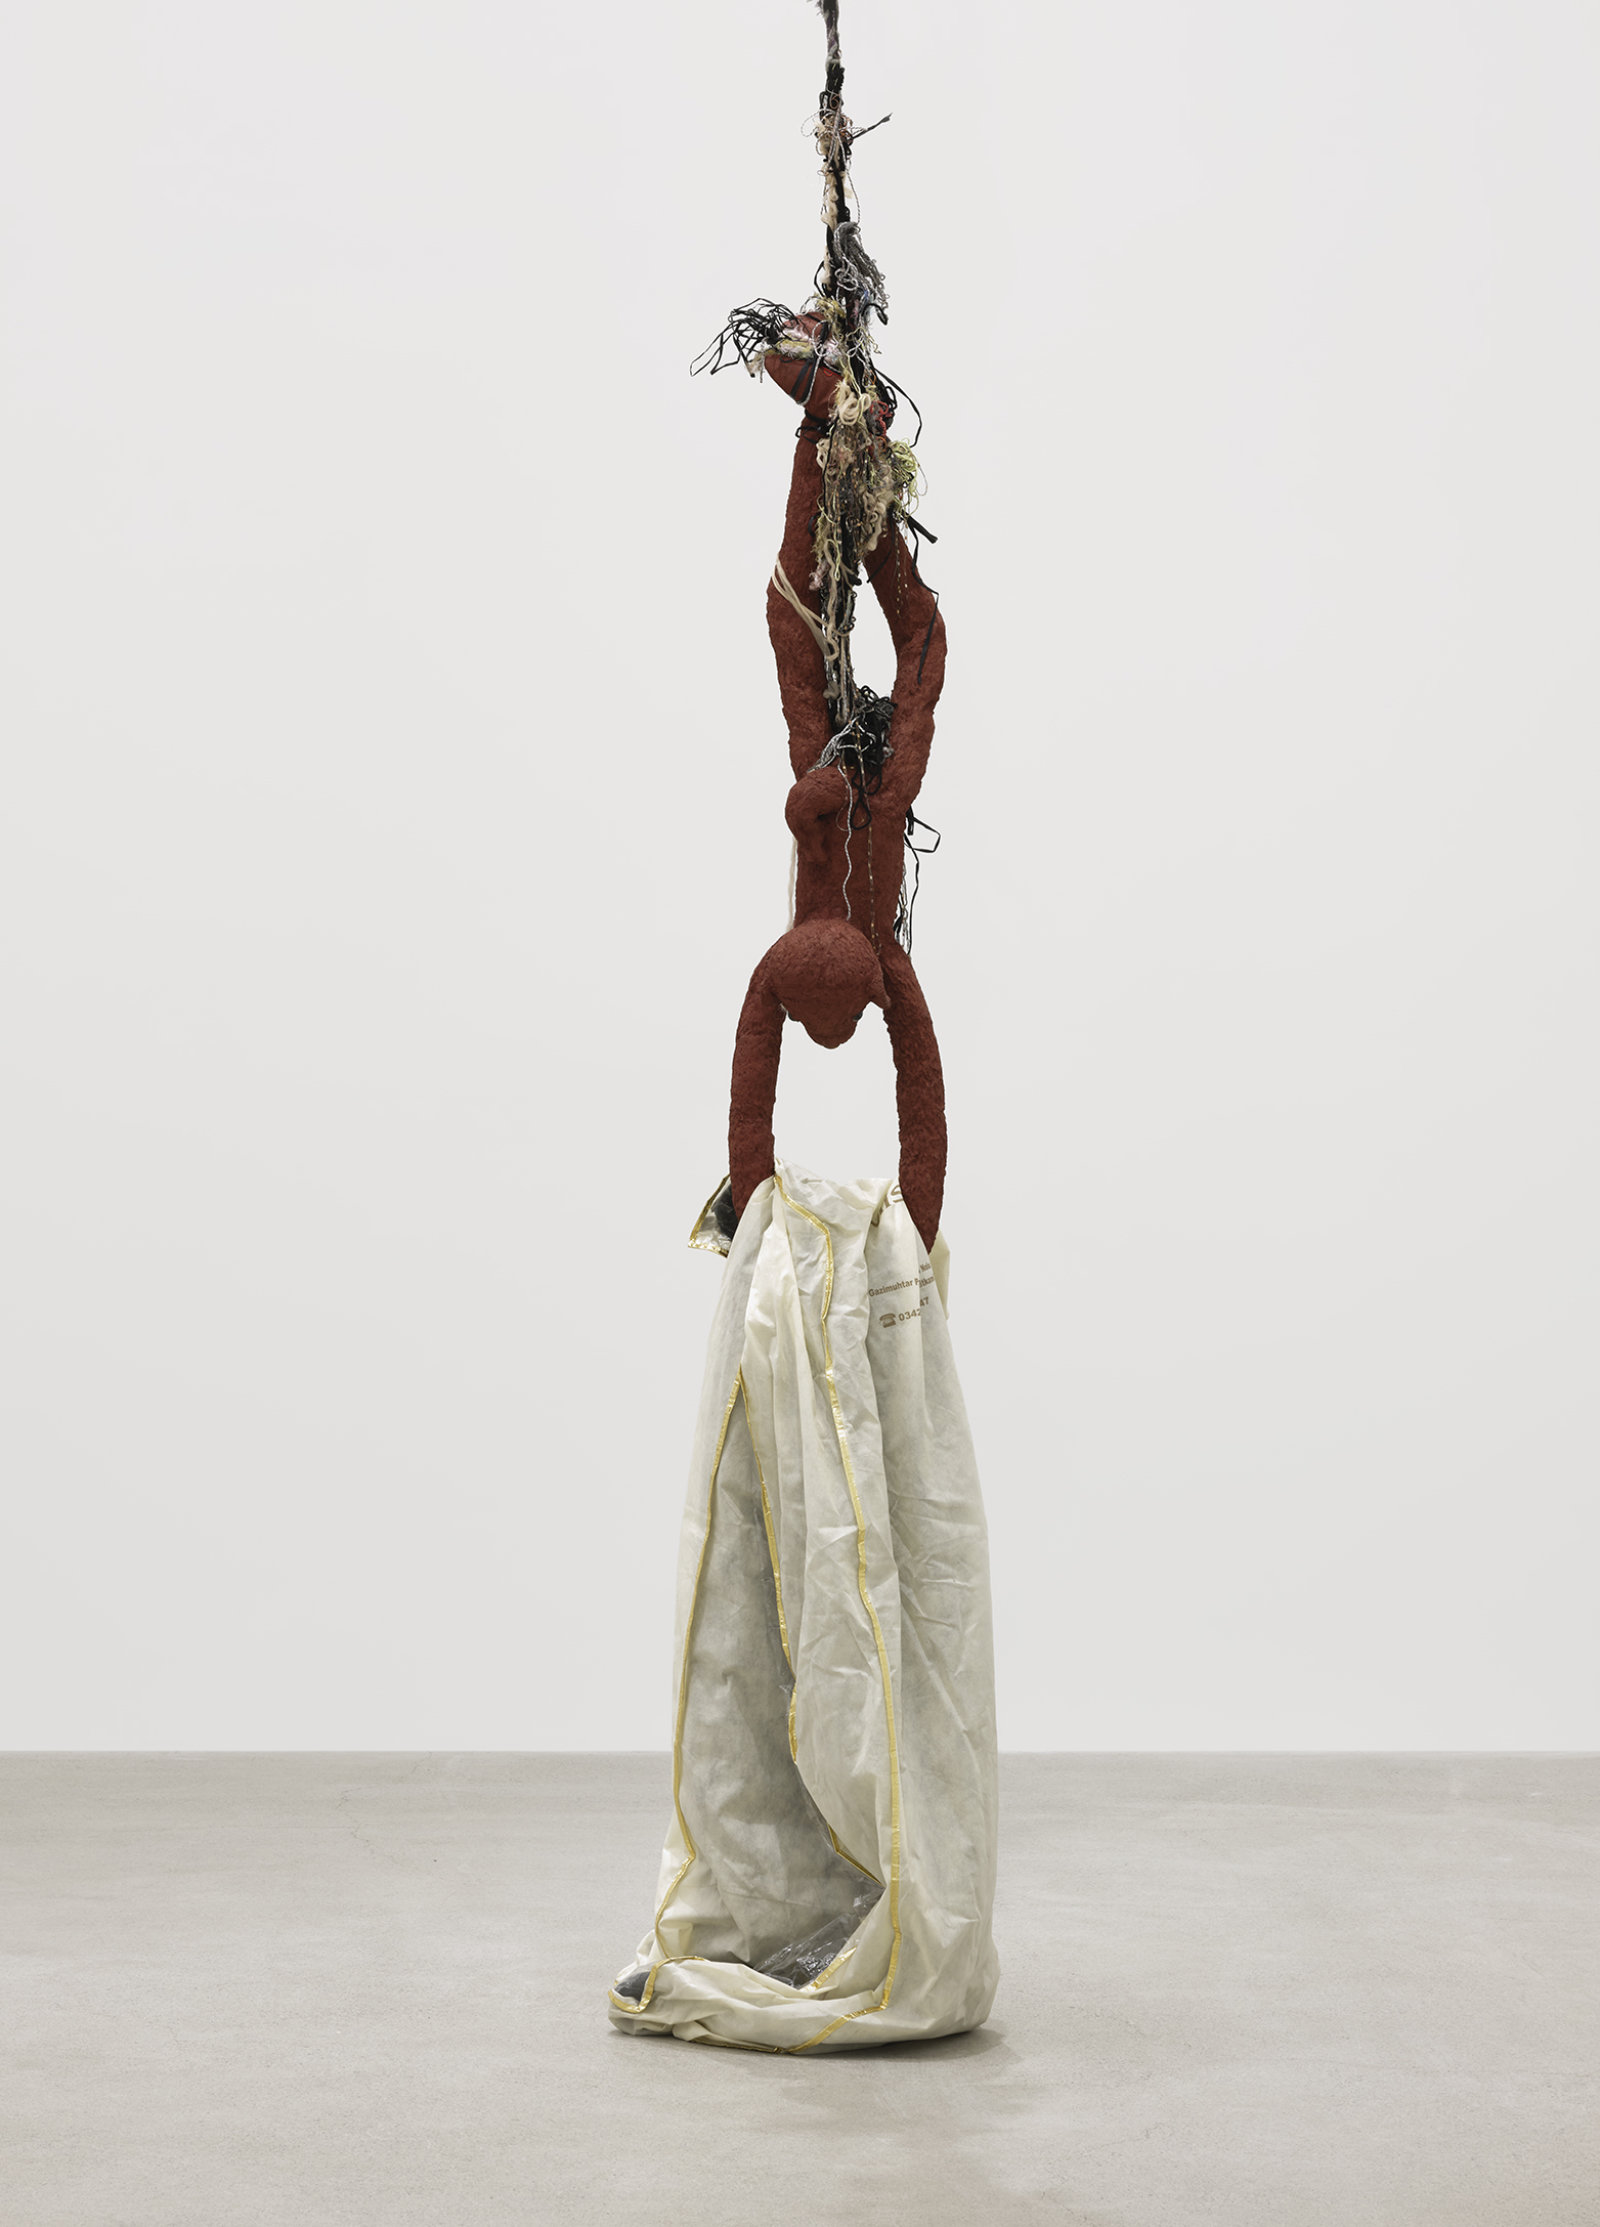 Liz Magor, Delivery (red), 2018, silicone rubber, textiles, twine, 325 x 26 x 23 in. (826 x 66 x 58 cm) by Liz Magor